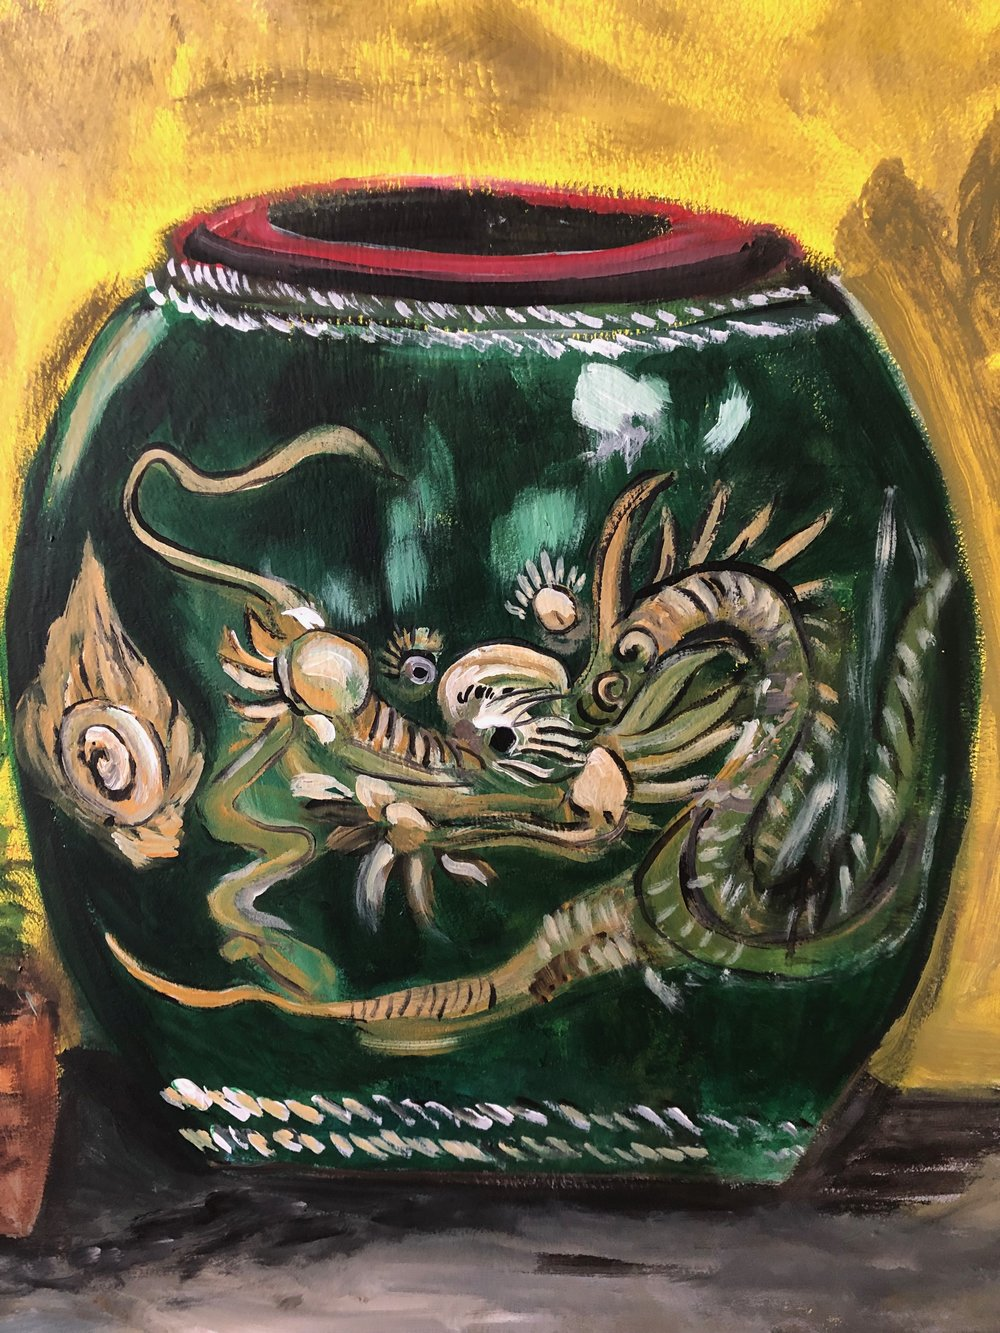 These large urns can still be seen today. Mostly from China and they come with either the dragon, phoenix or both.